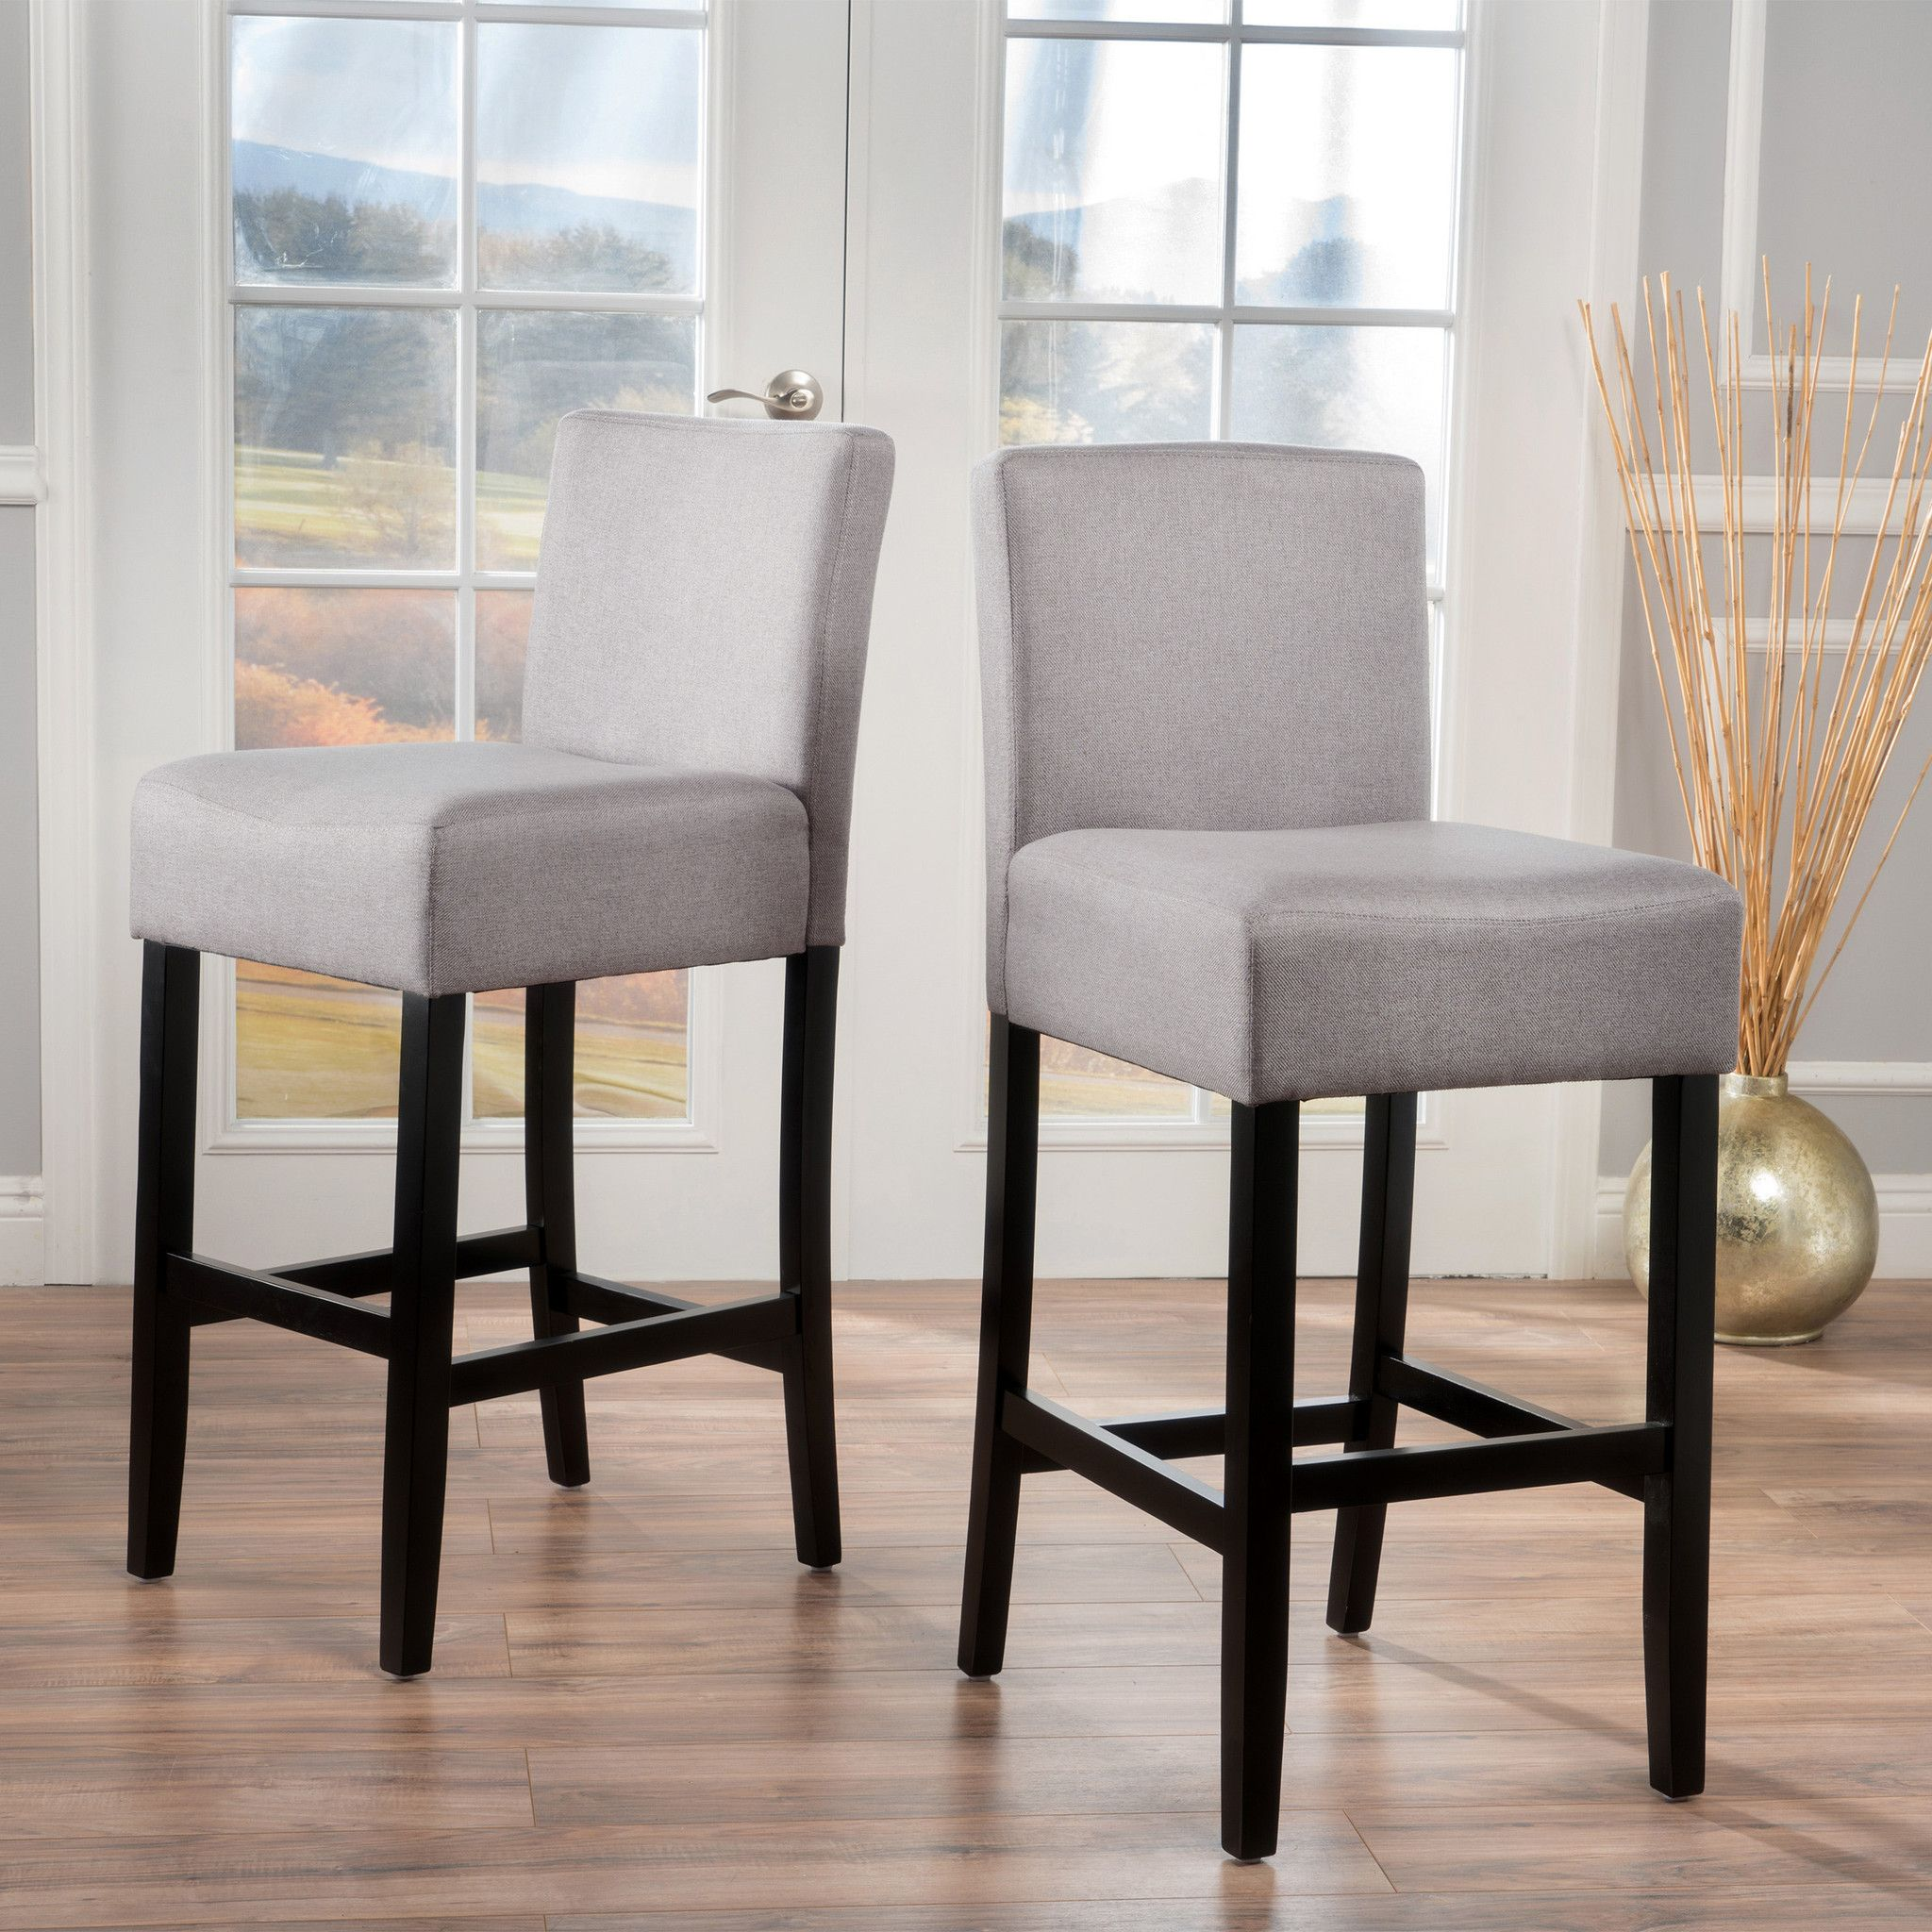 ad Bell Barstool Set of 2 Add fort to your home with our Bell